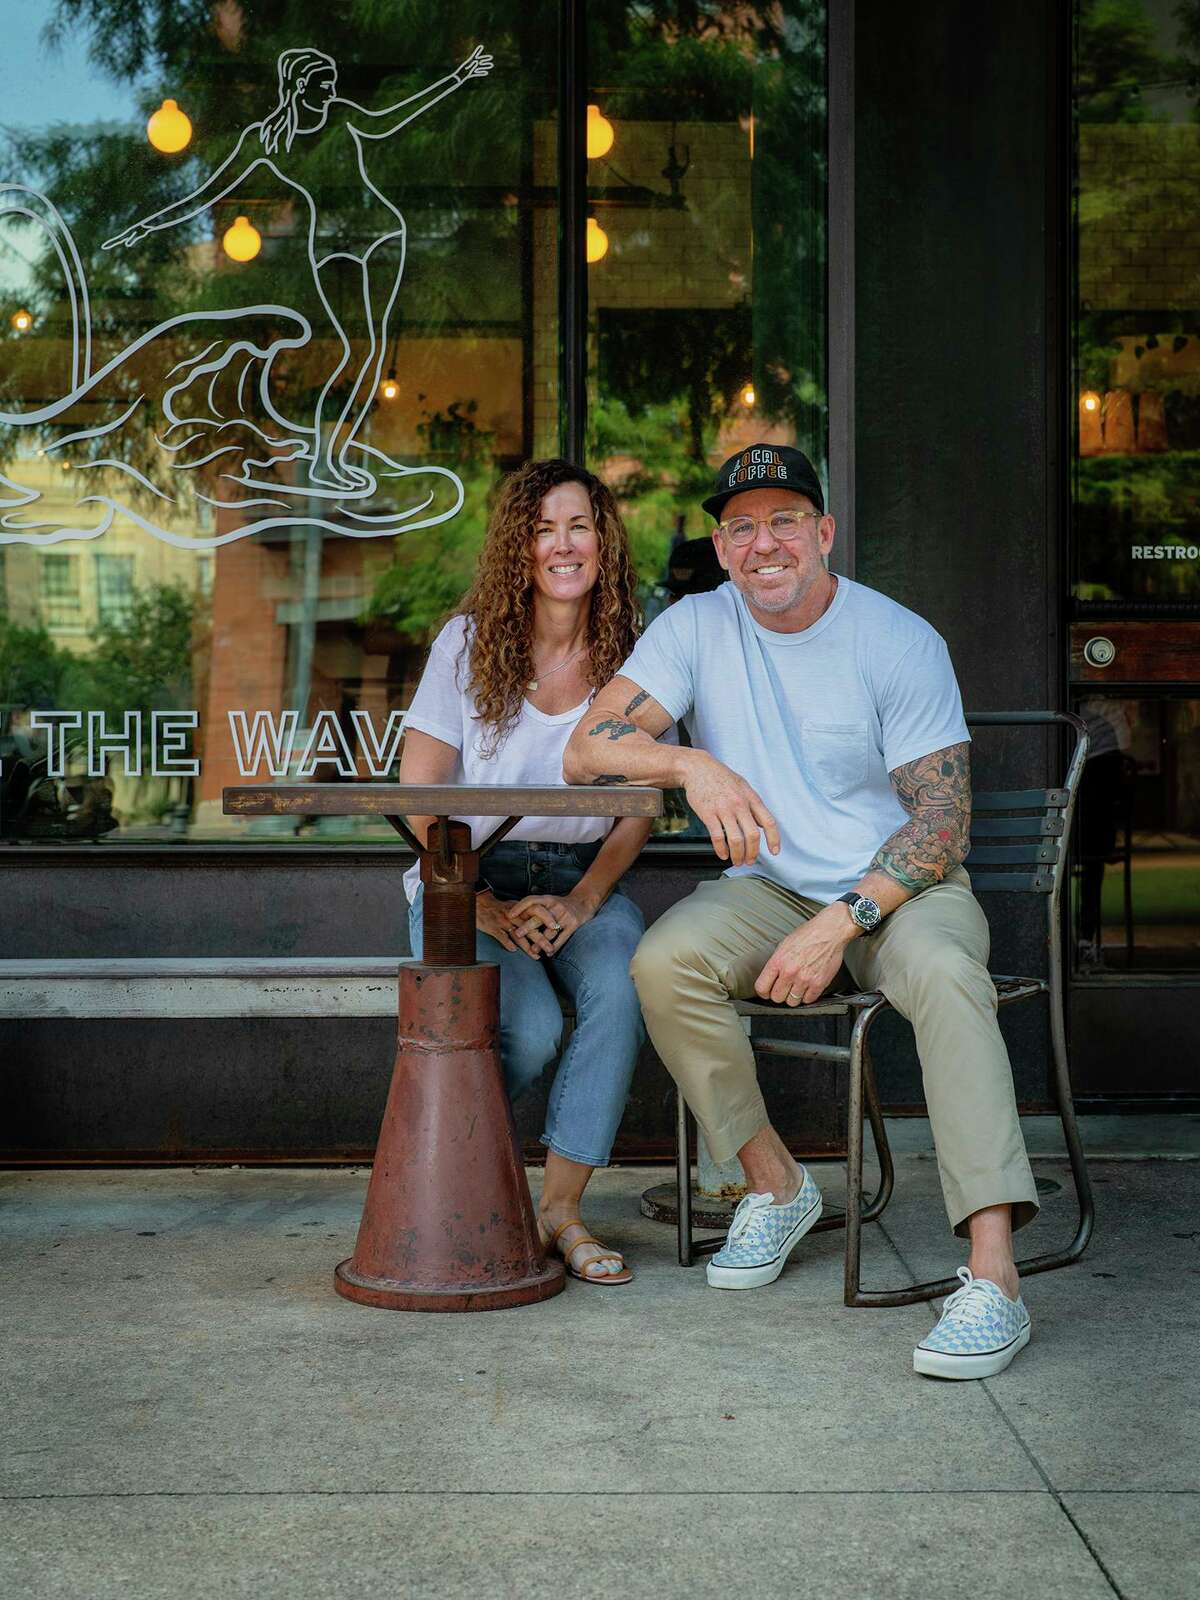 Local Coffee Founders owners Neesha and Robby Grubbs are the owners of Kineapple, a new healthy food concept moving into the Pearl's Bottling Department food hall later this month.